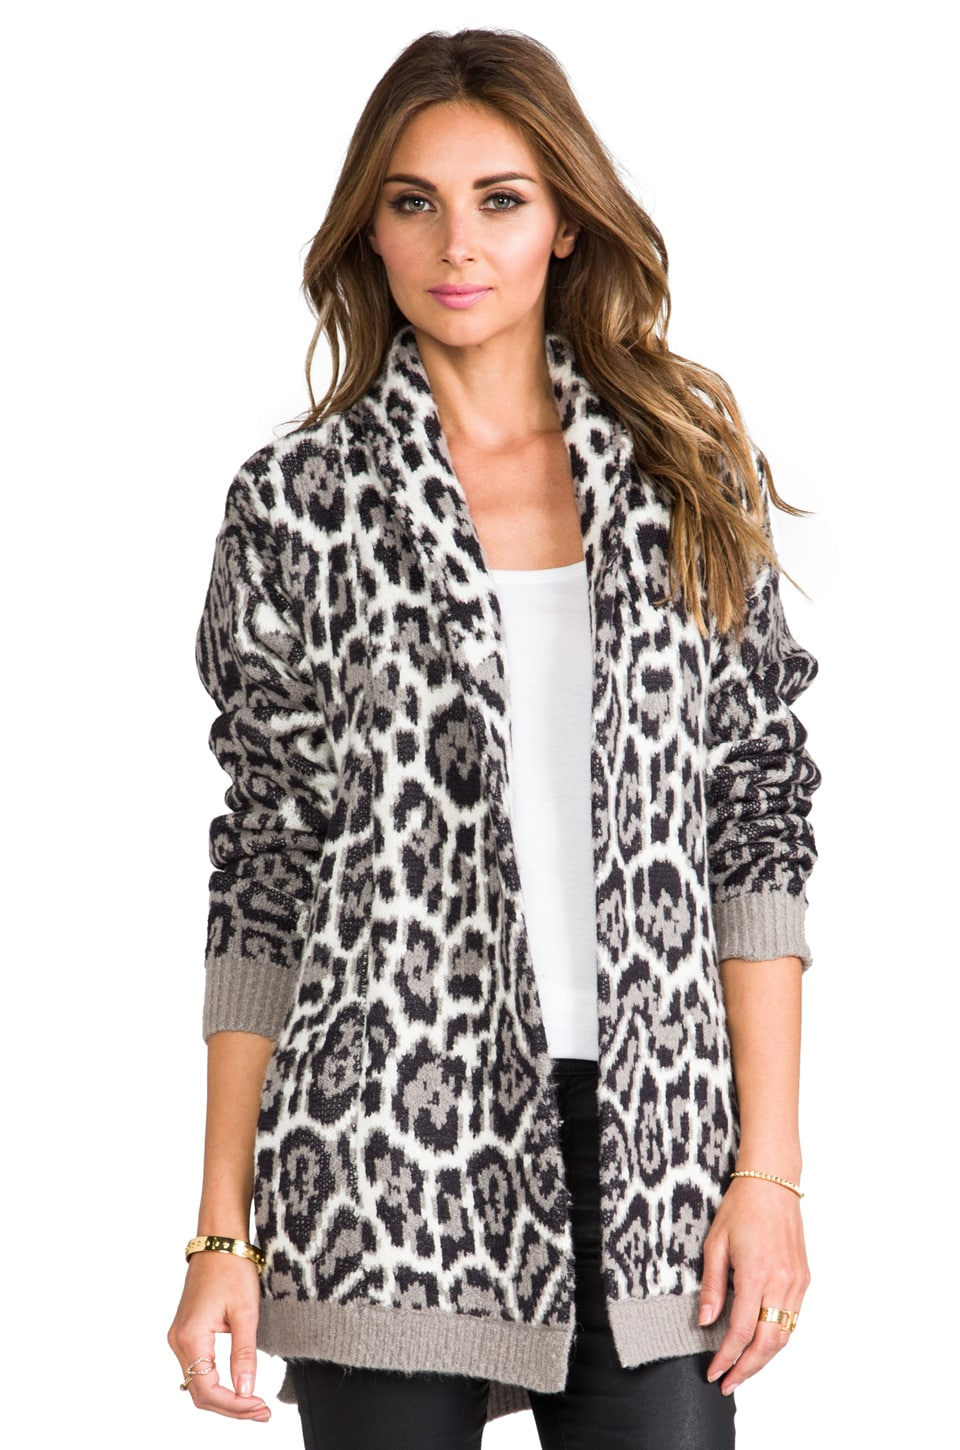 Juicy Couture Wild Lynx Jacquard Cardi in Angel